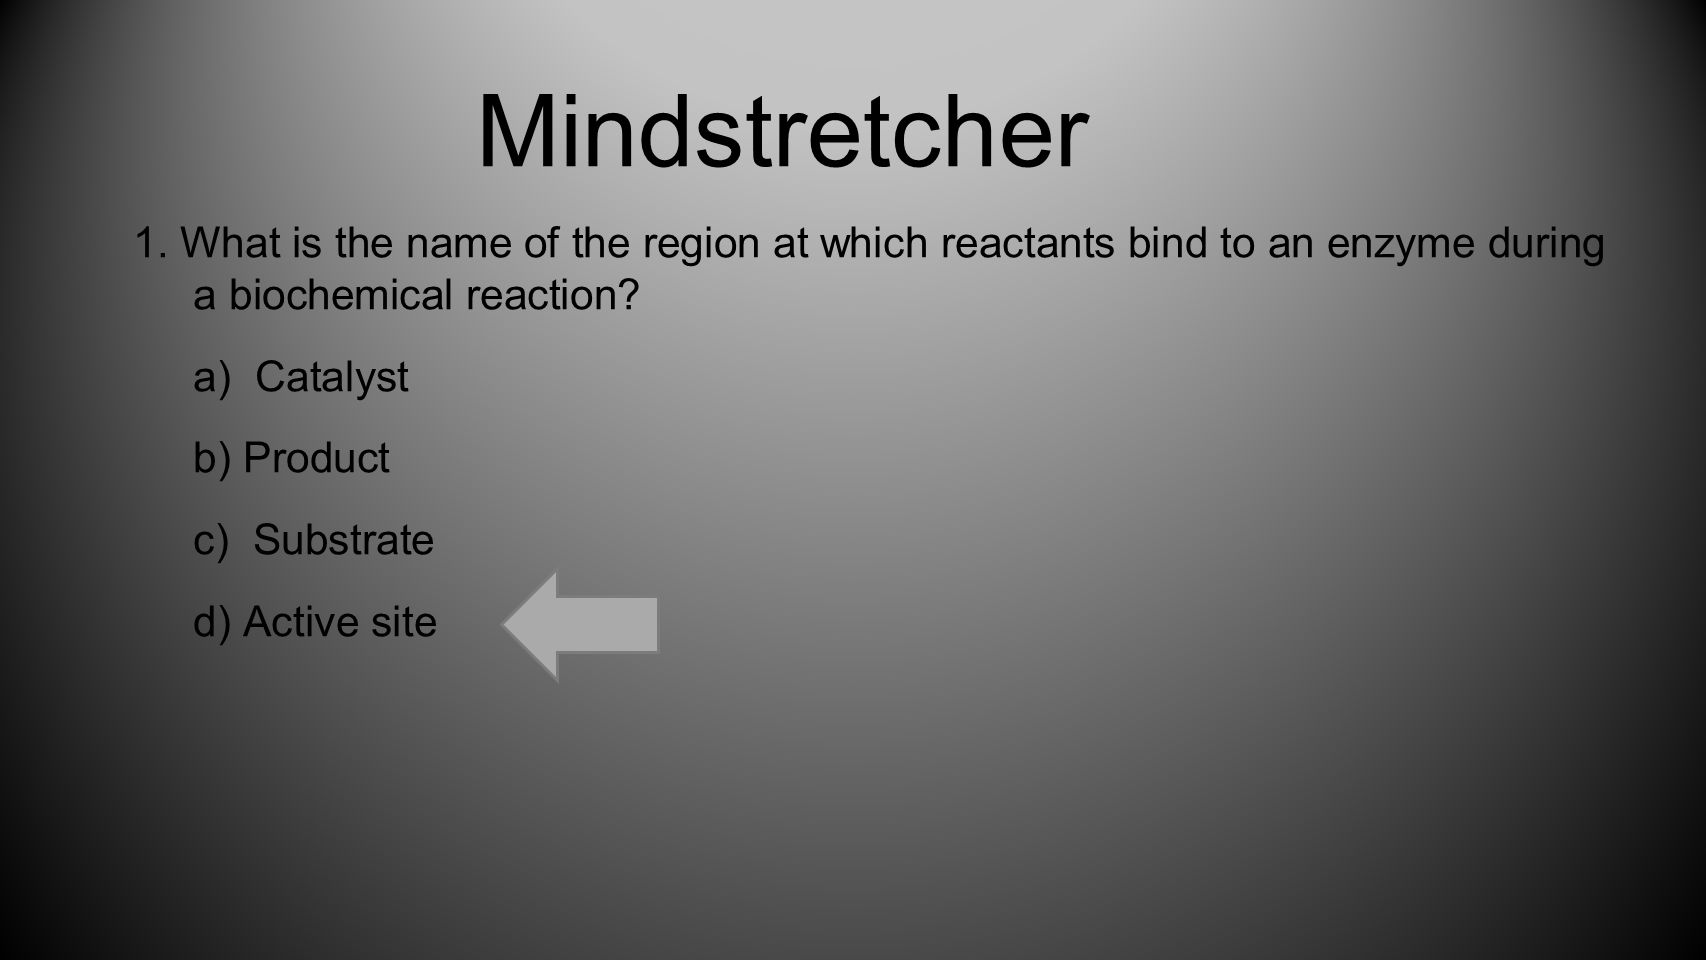 Mindstretcher 1. What is the name of the region at which reactants bind to an enzyme during a biochemical reaction